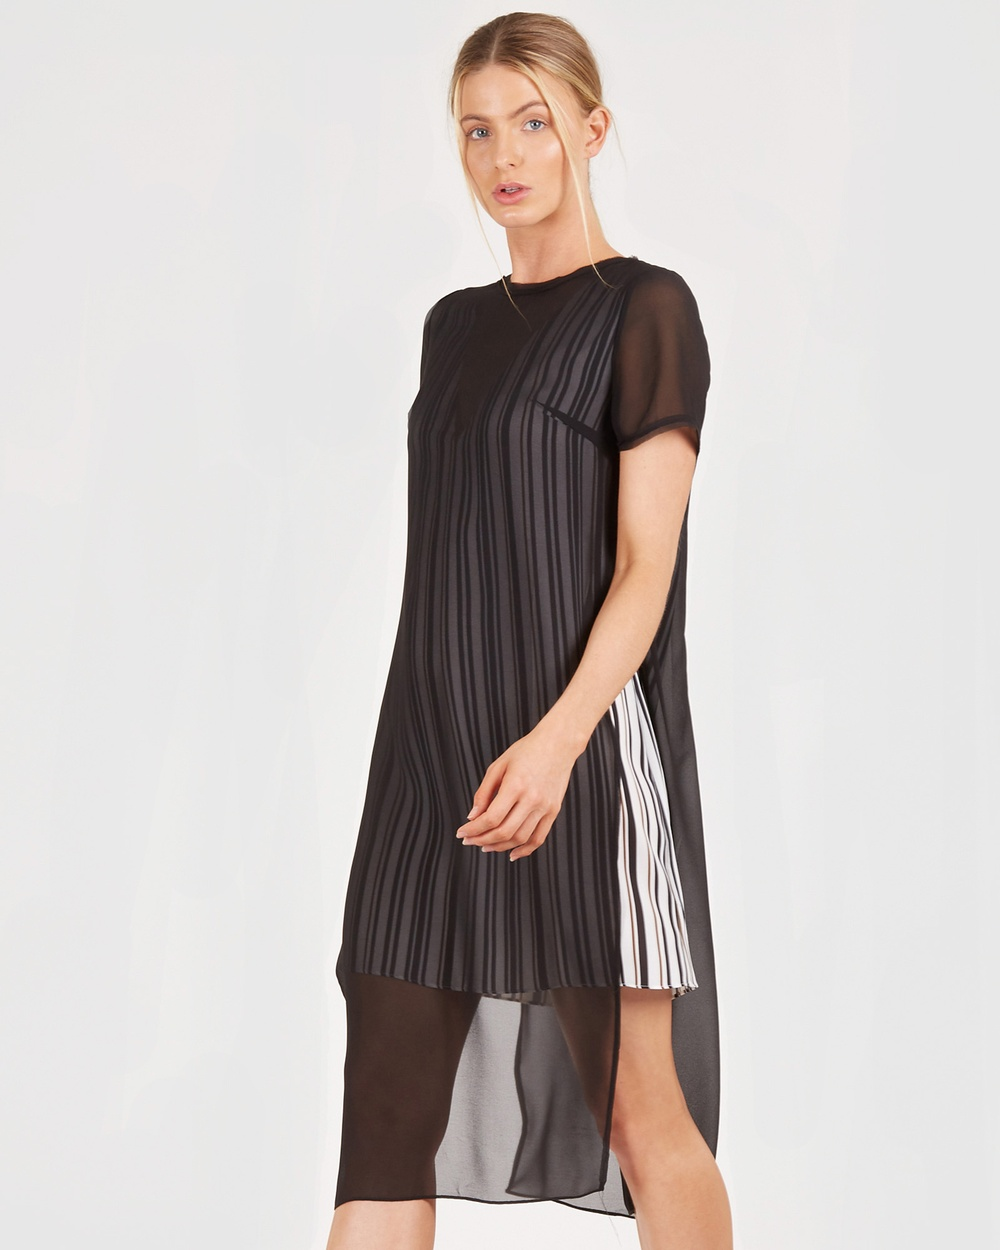 Socialight Multi Rei S-L Dress